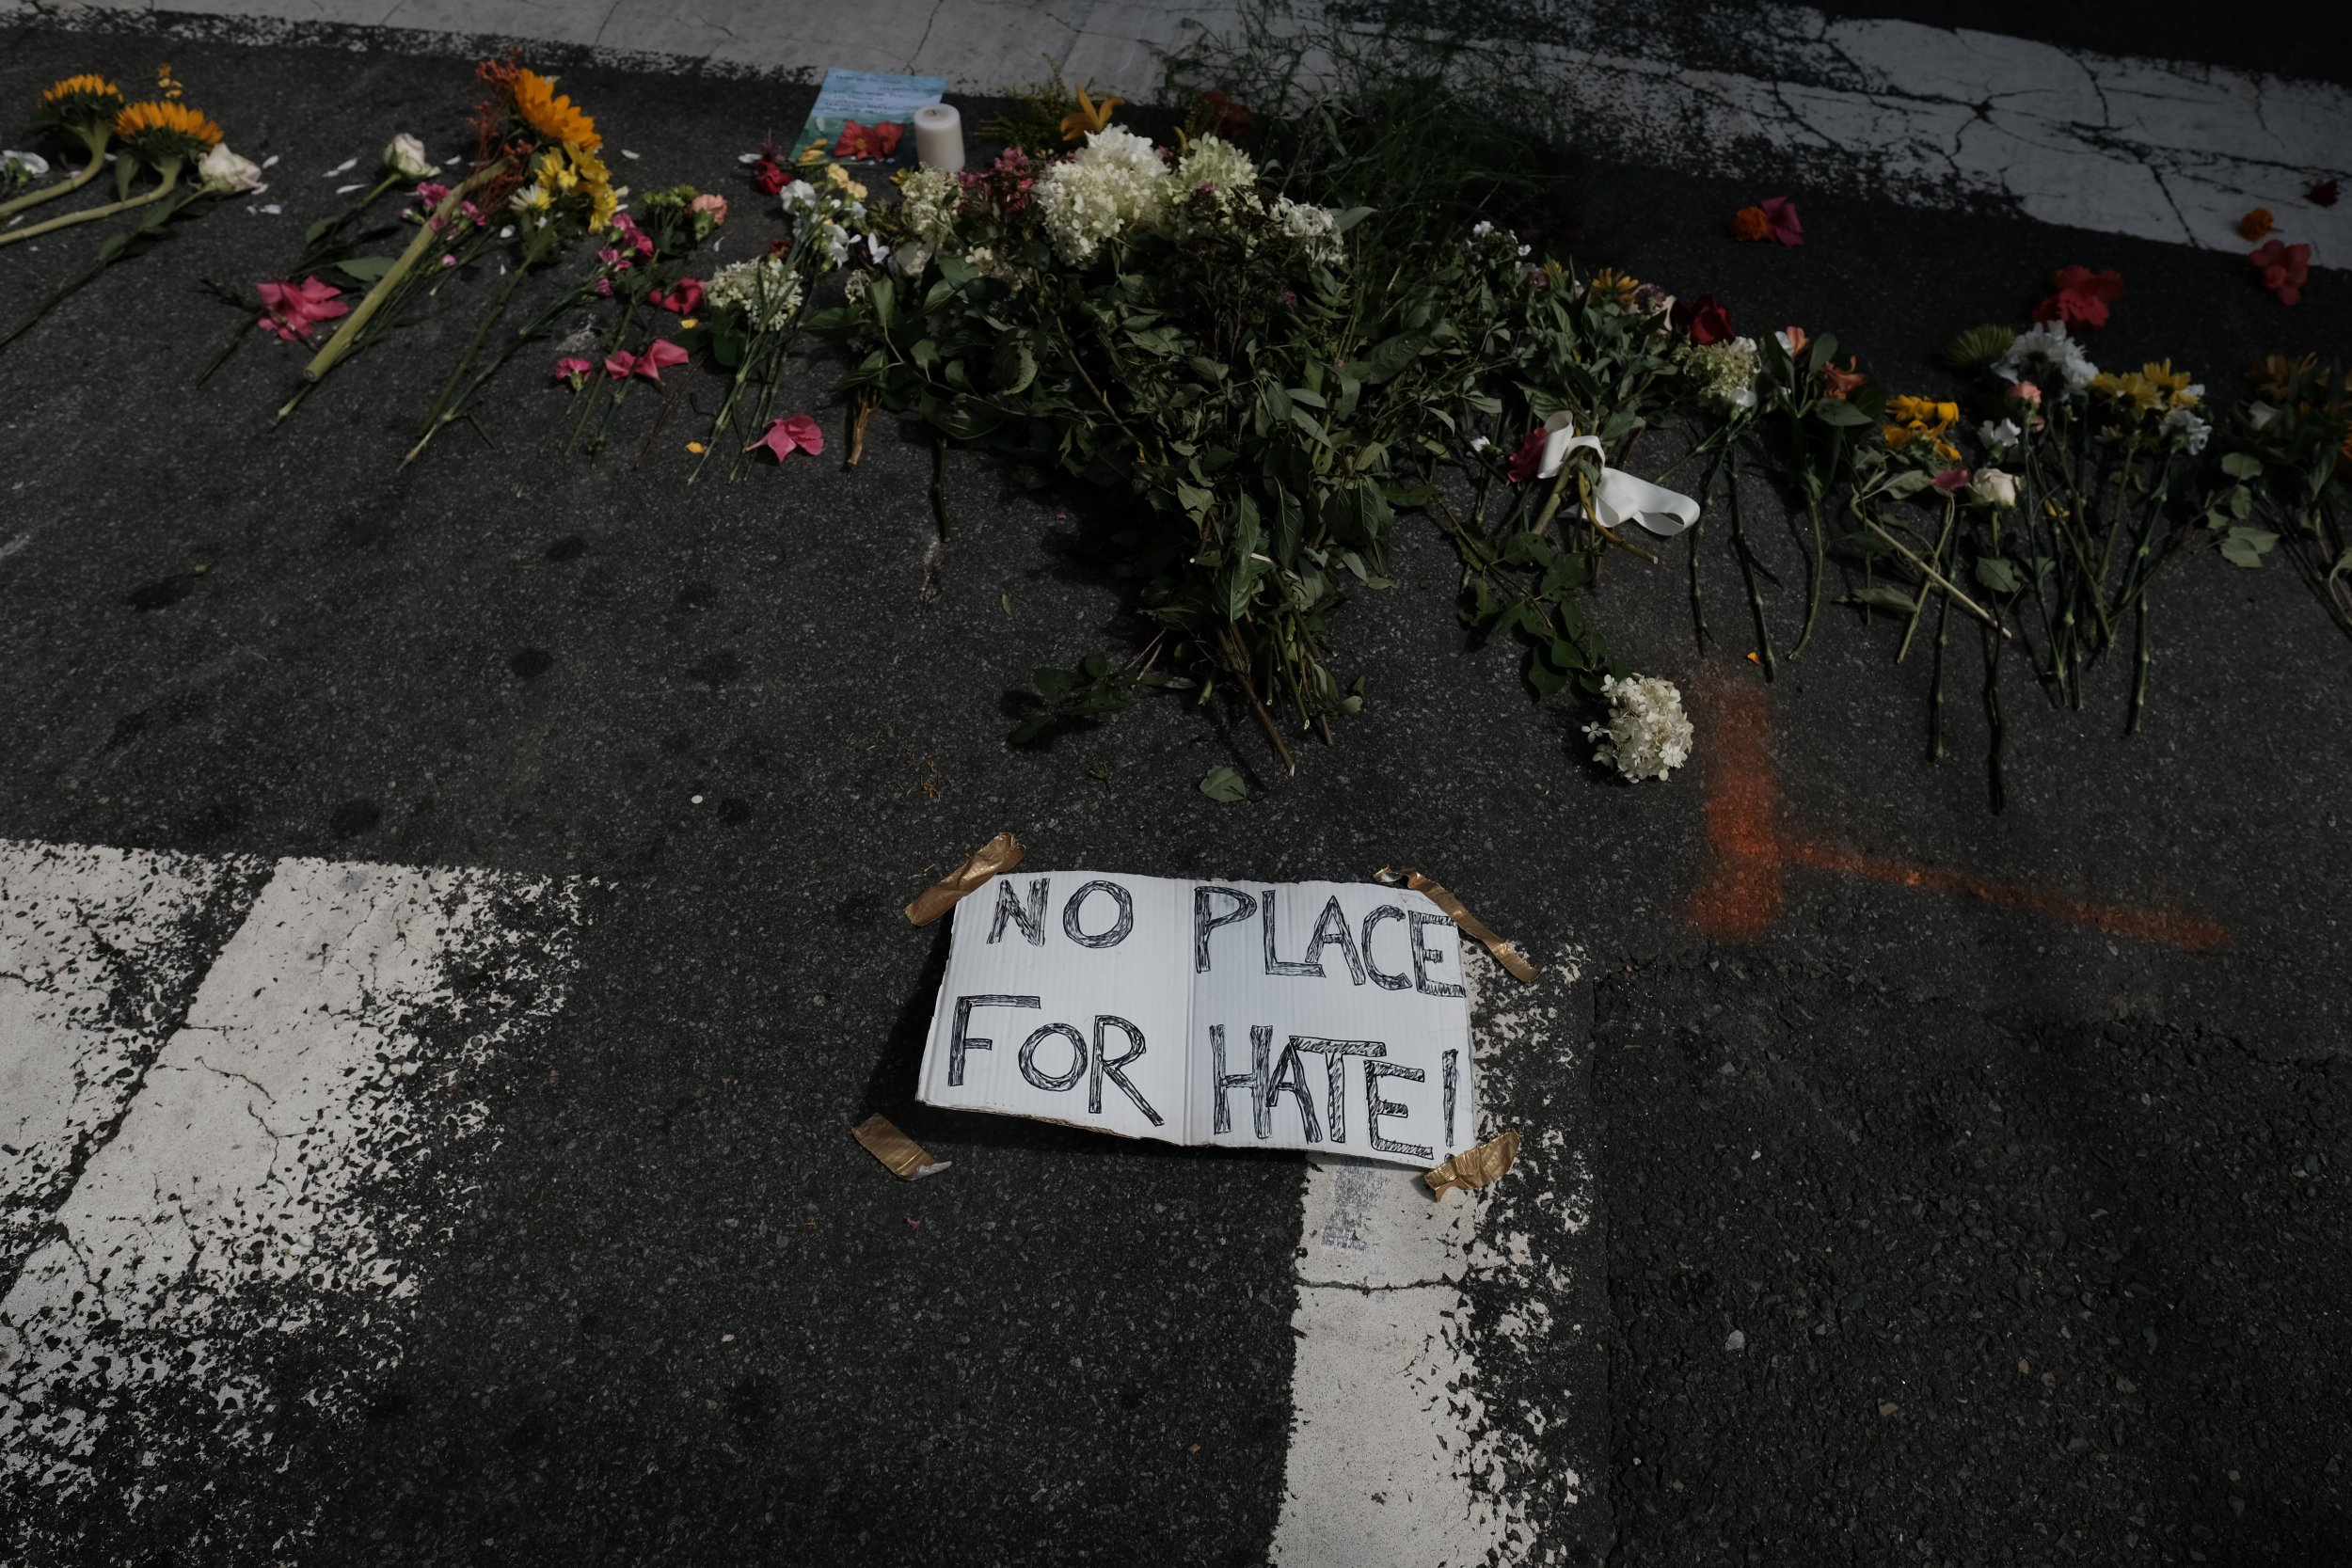 Anti Fascism Protesters And White Power Groups Were Battling Long Before Charlottesville